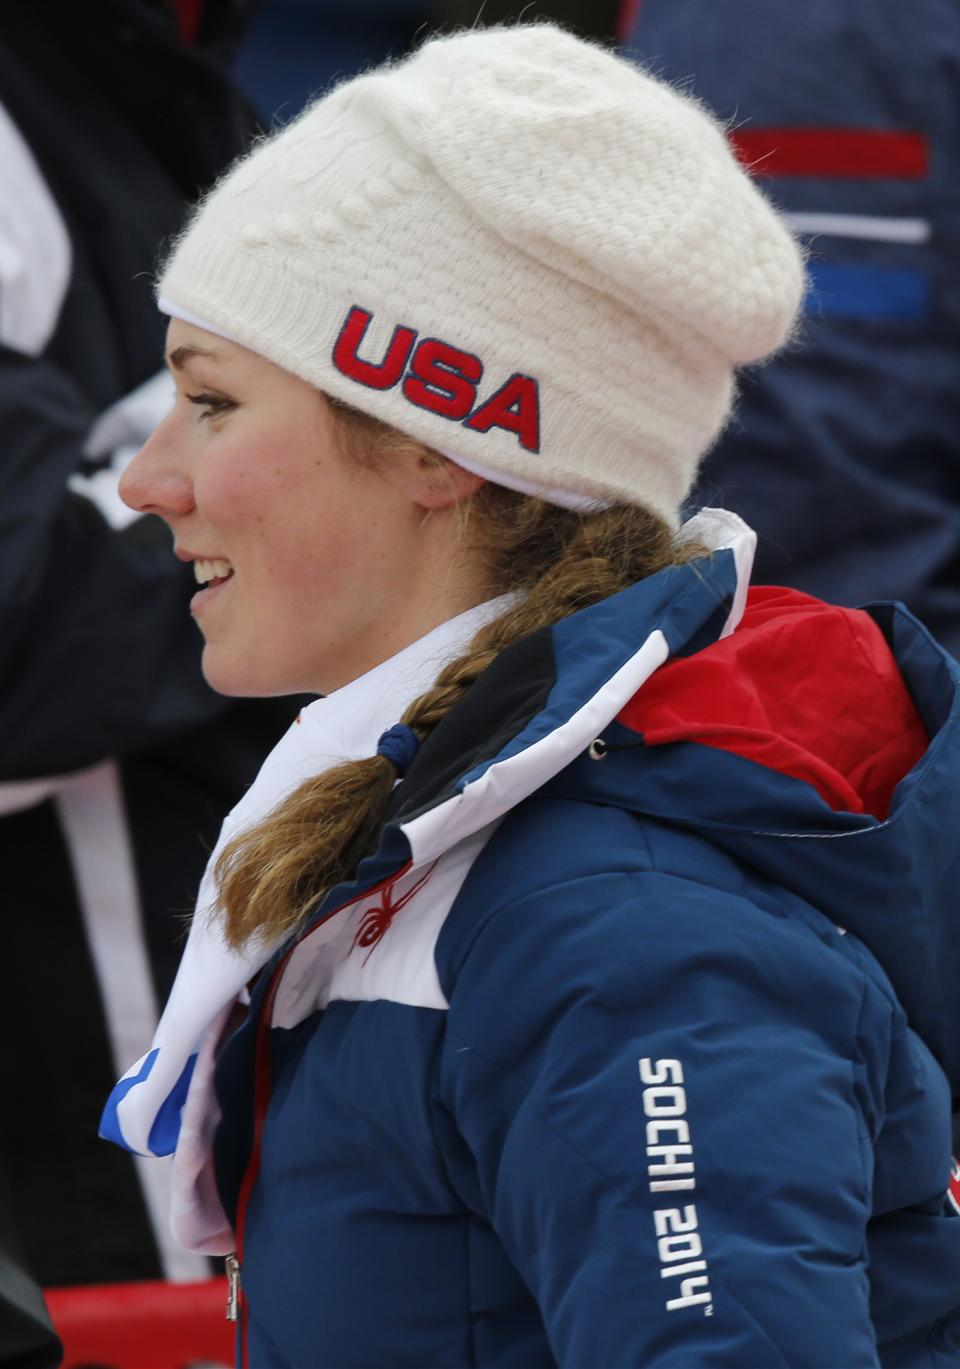 US teen Mikaela Shiffrin wins Olympic slalom gold